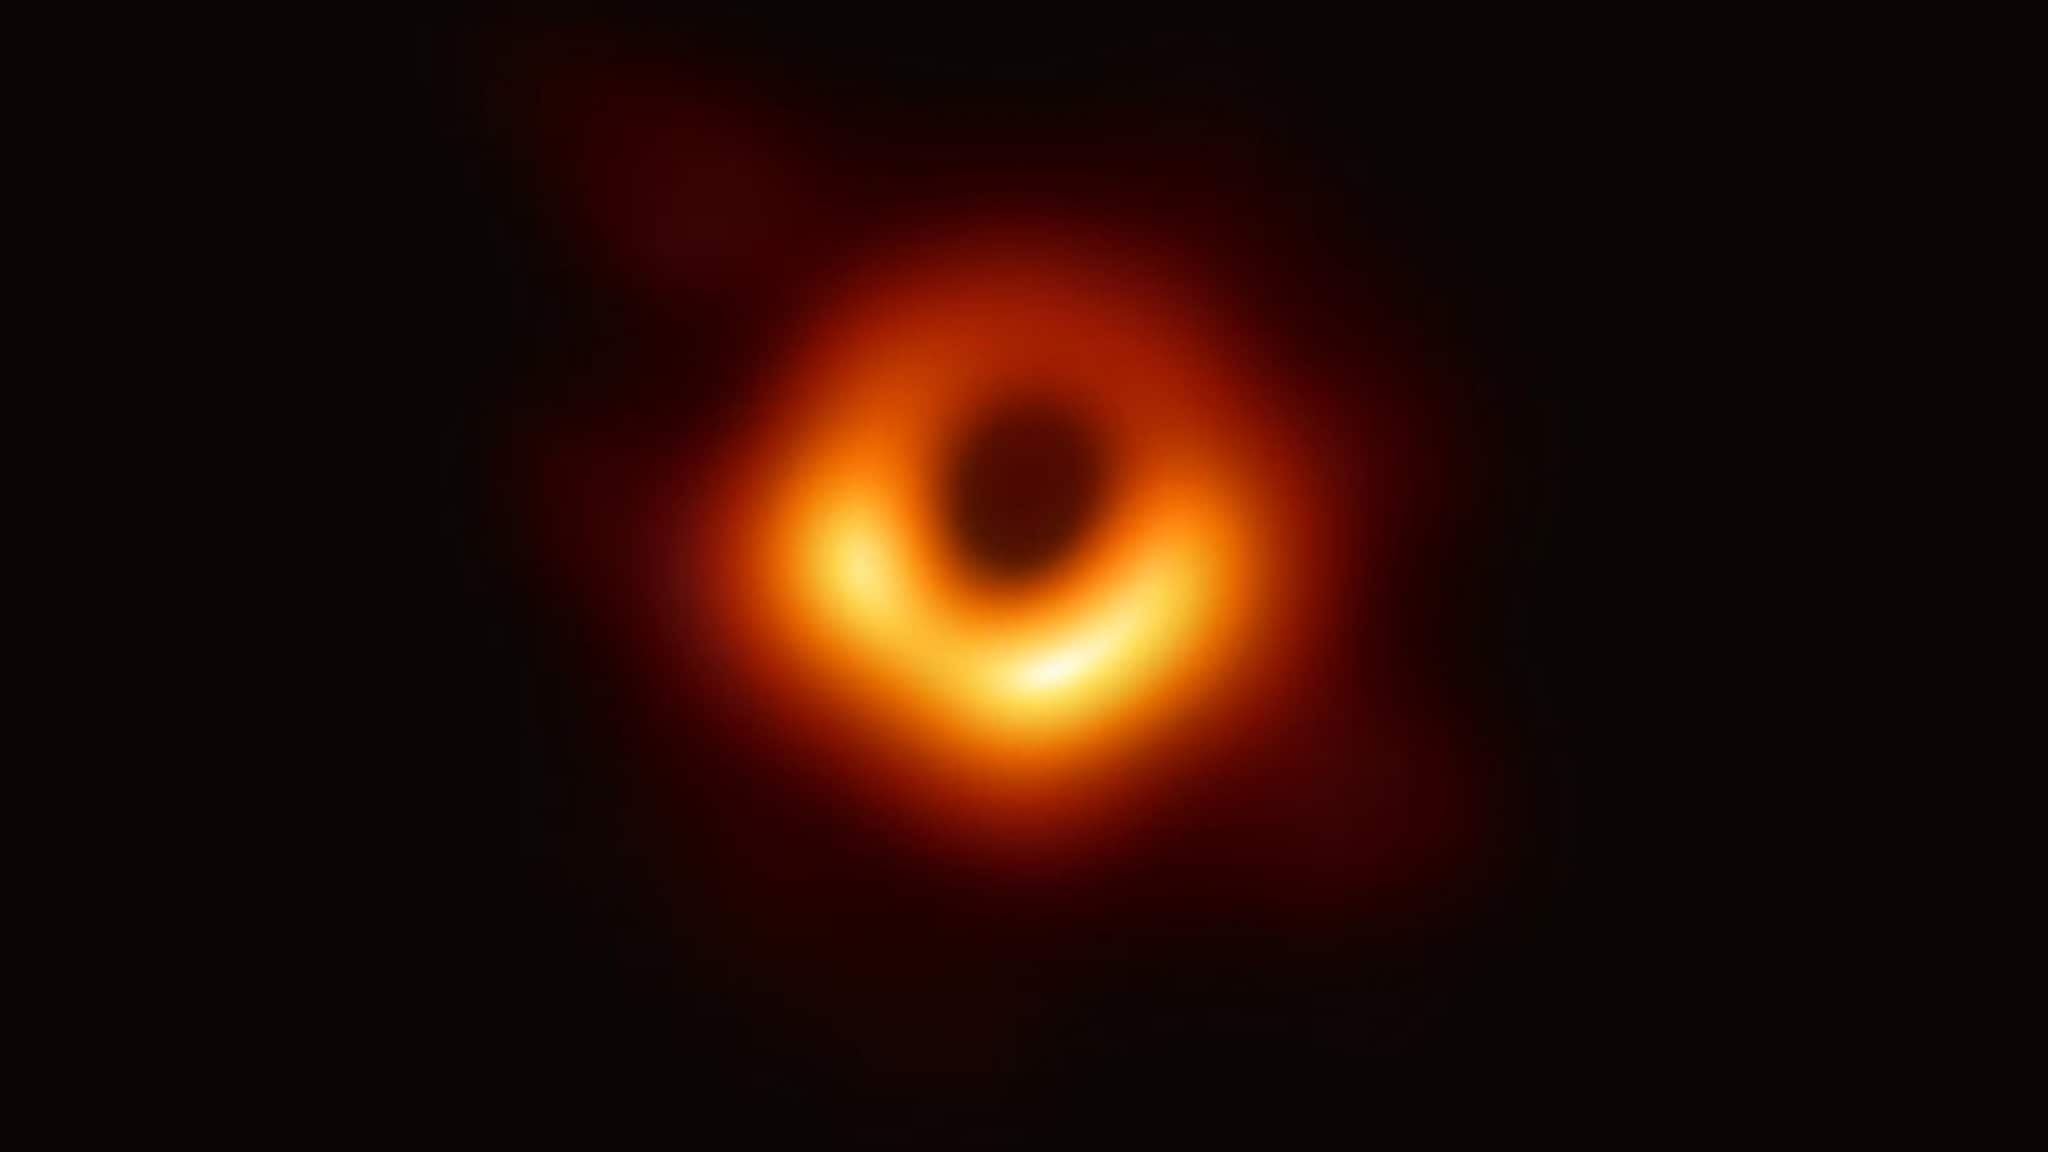 Black Hole Image Prize Wins Professor Nijmegen an Important American Award